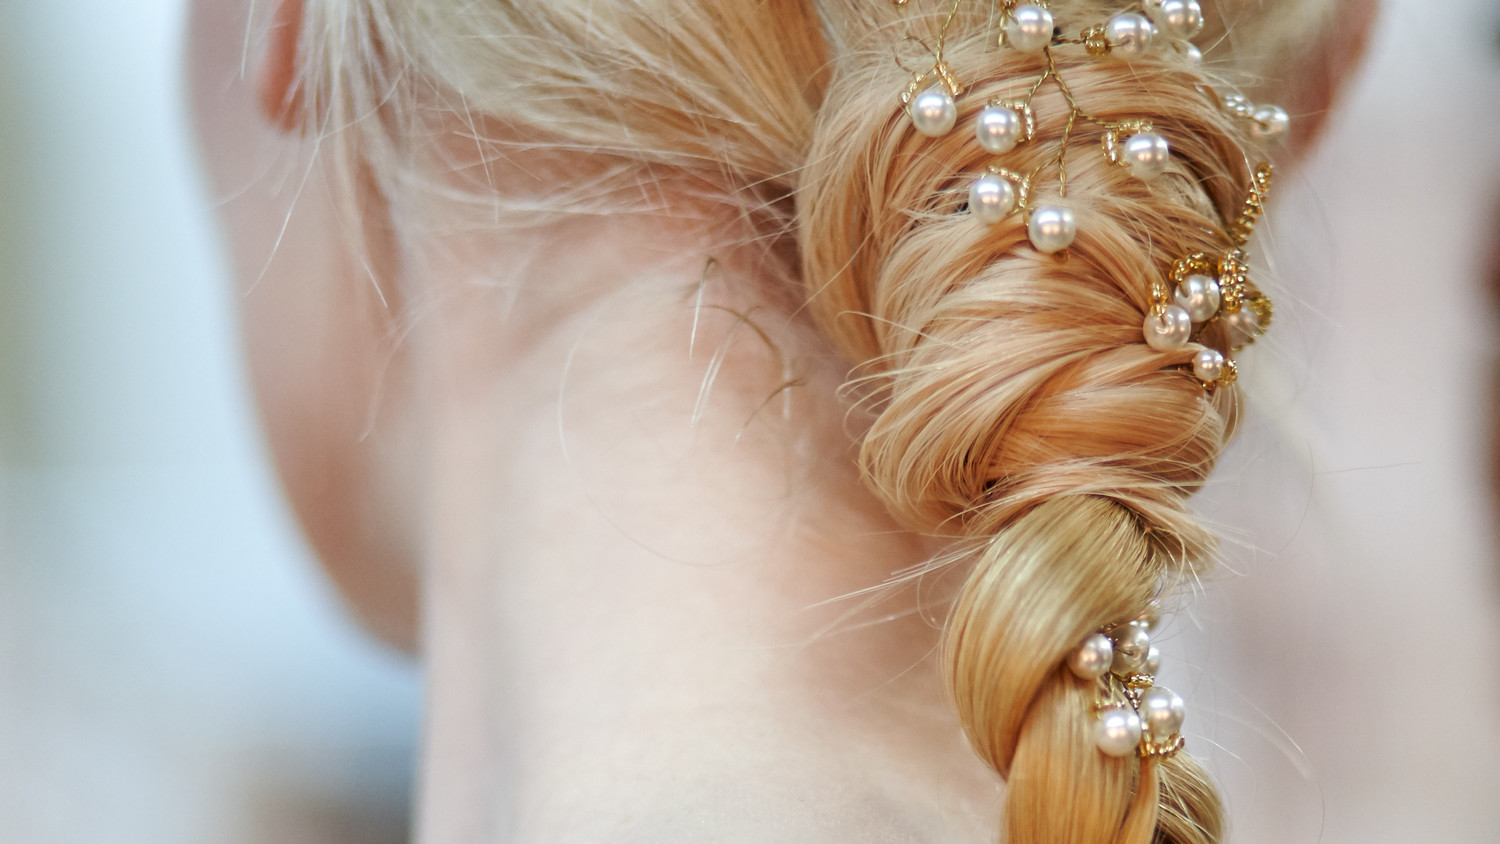 Bridal Hairstyles 2016: Wedding Hairstyles For Bows, Buds, Tiaras, And More From